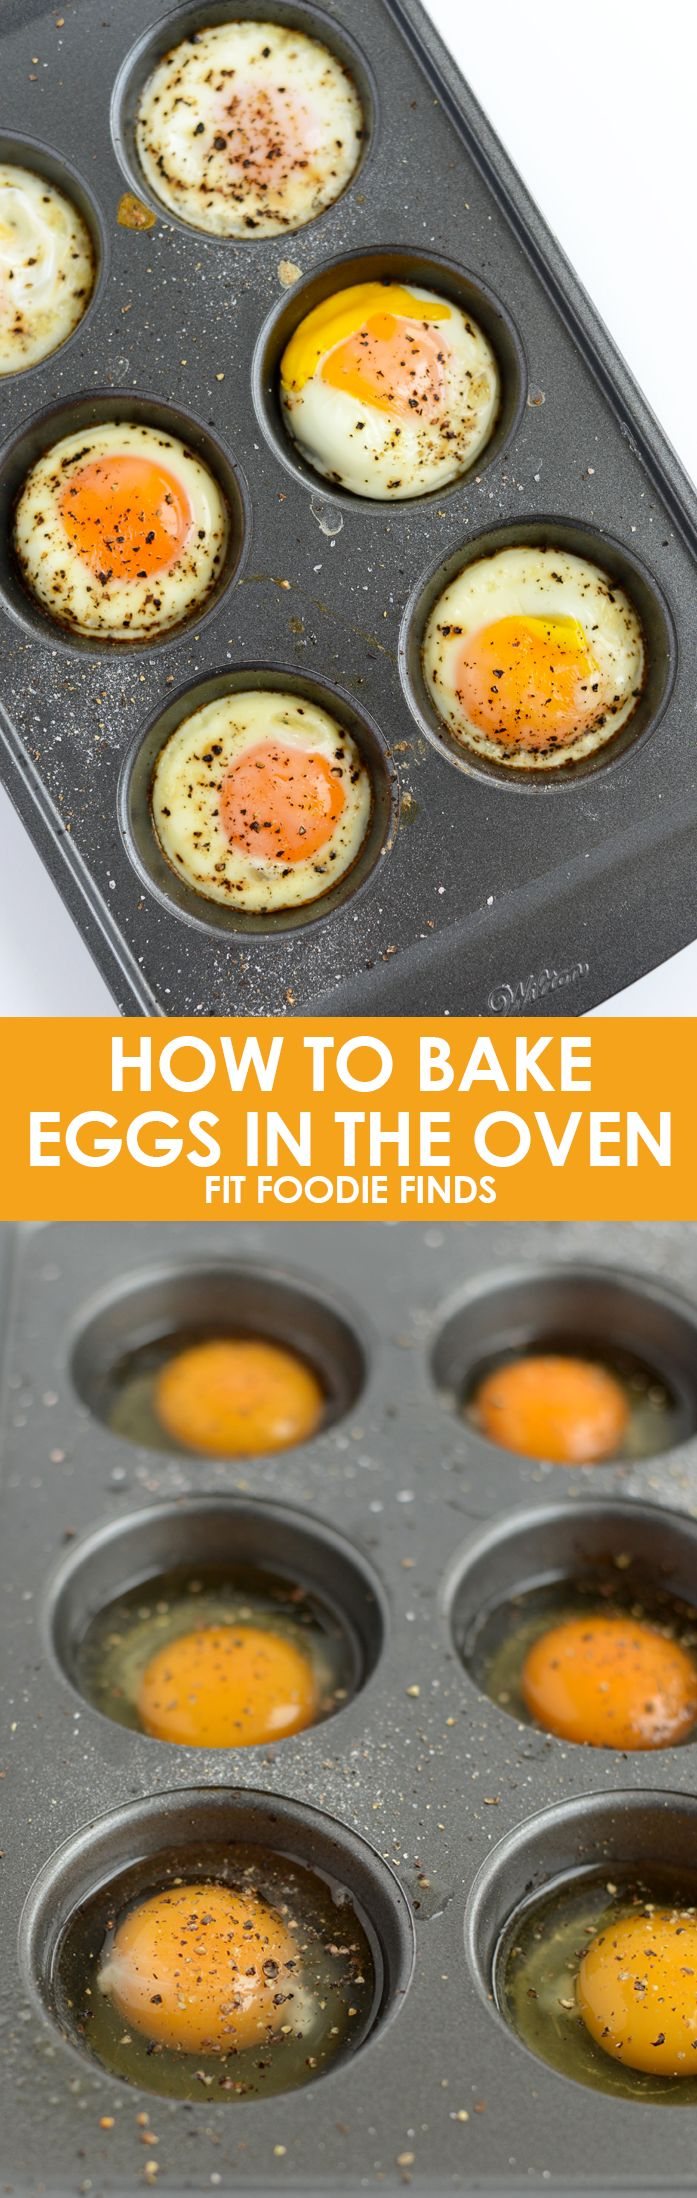 How to Bake Eggs in the Oven from Fiid Foodie Finds. I am intrigued!